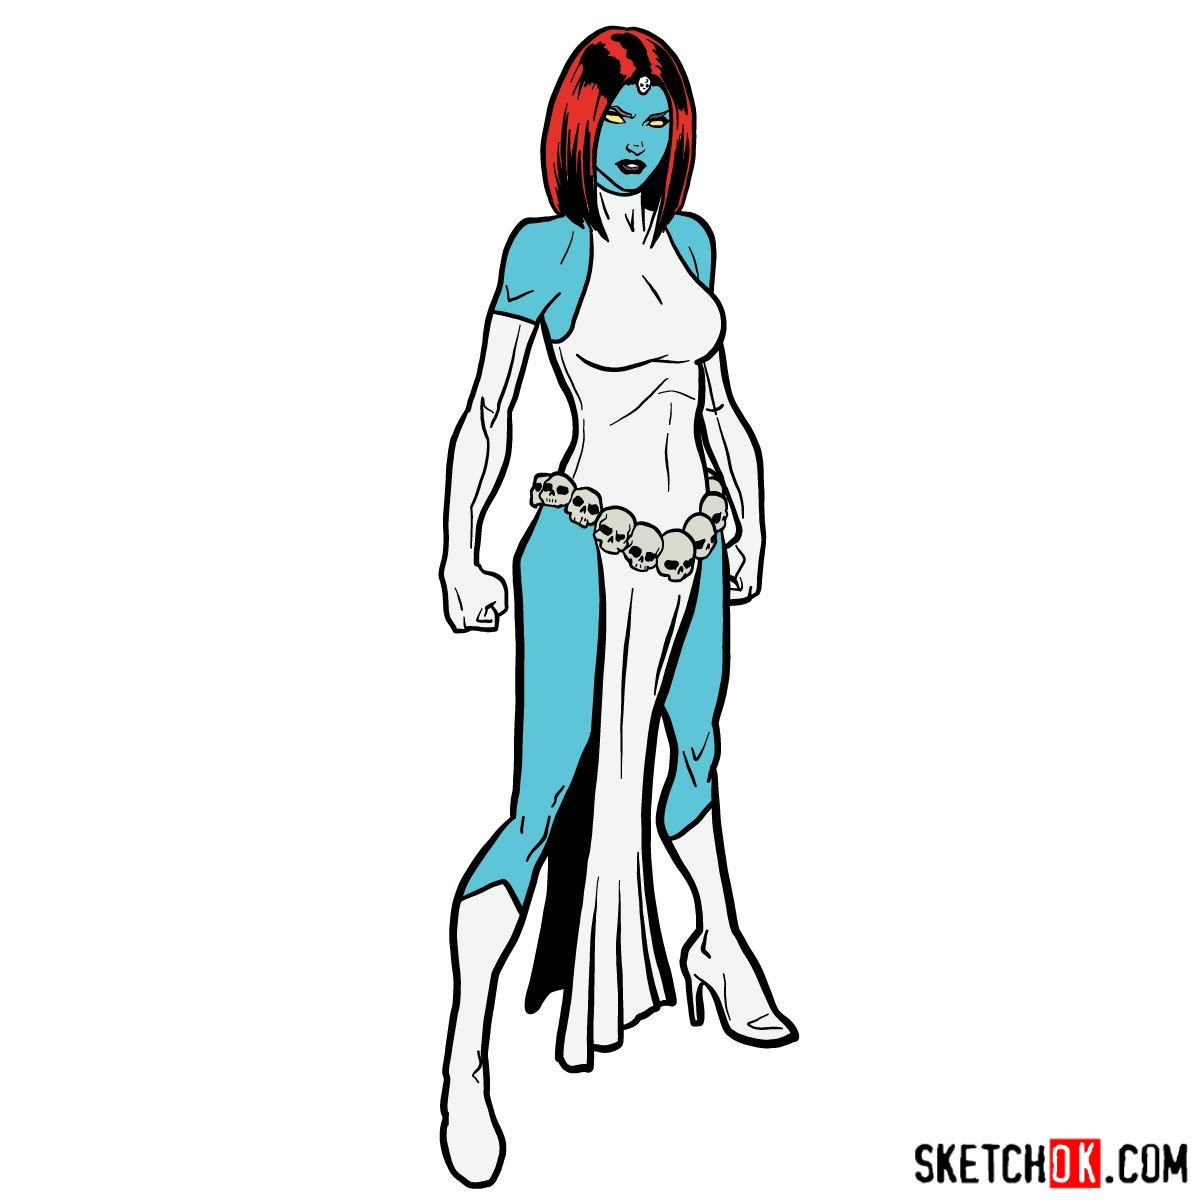 How to draw Mystique from X-Men